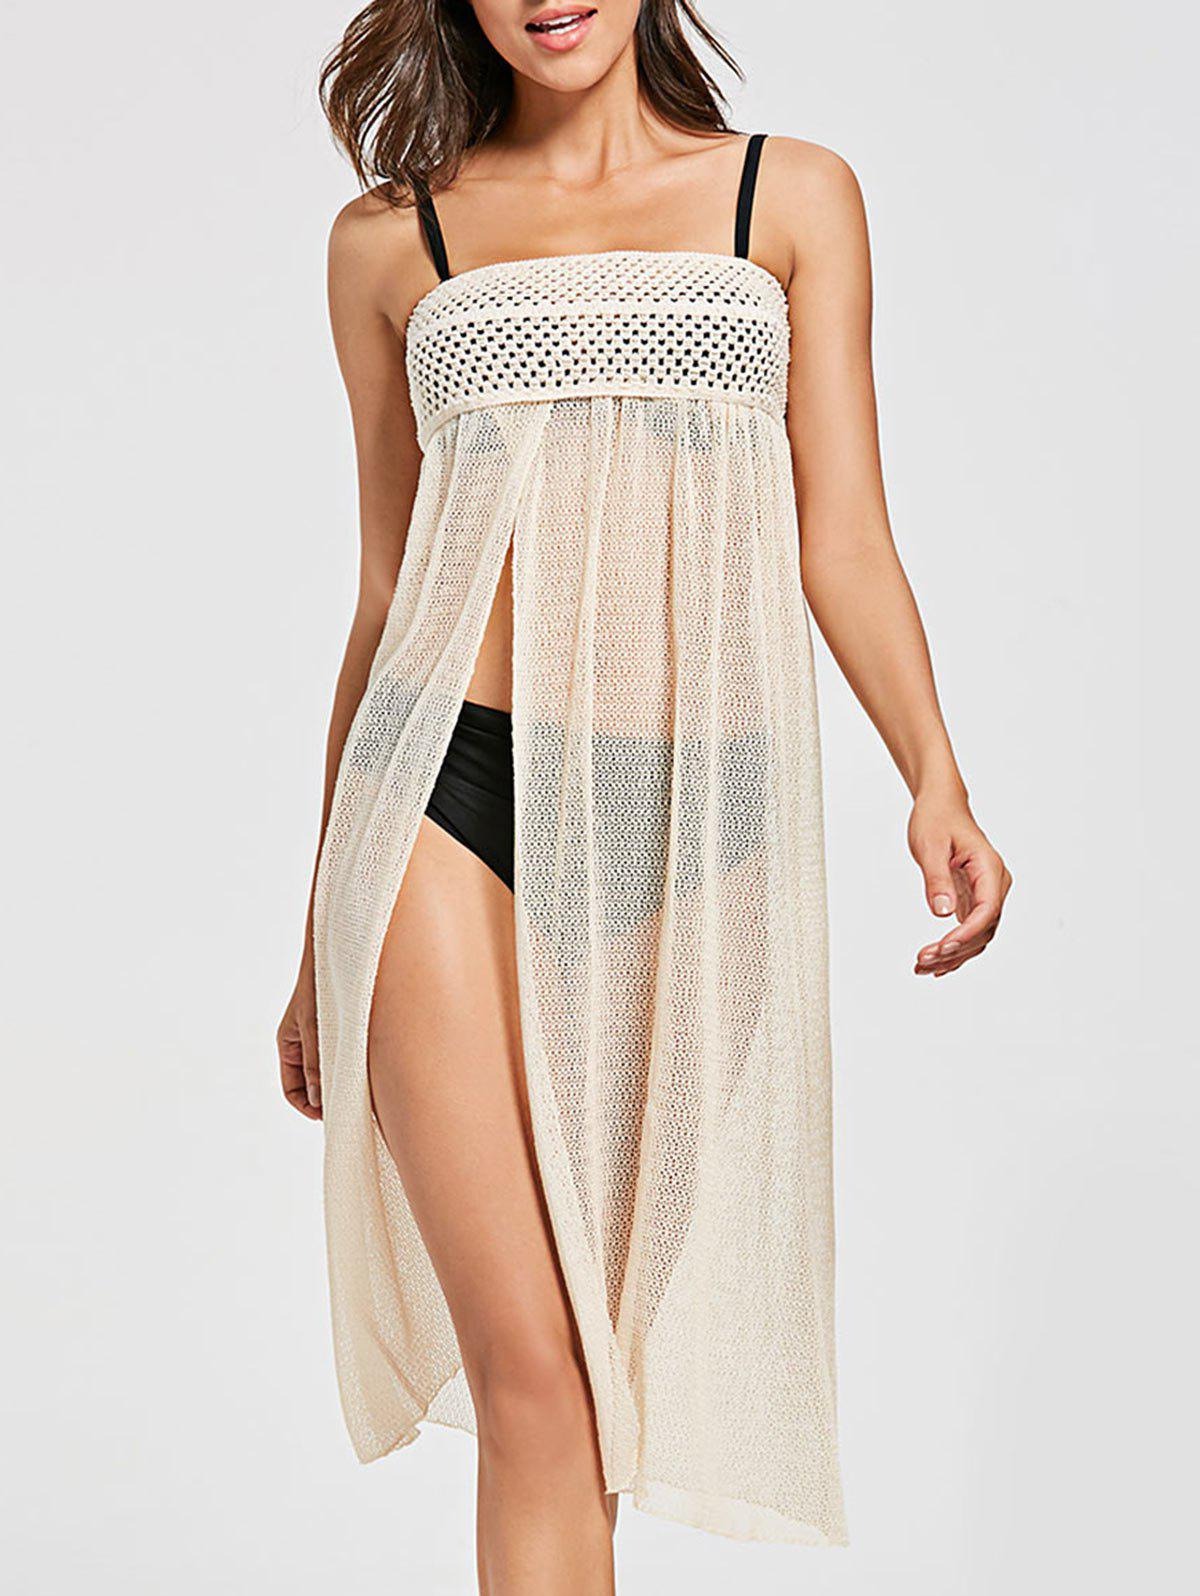 Crochet Slit Convertible Swimsuit Cover Up - BEIGE ONE SIZE